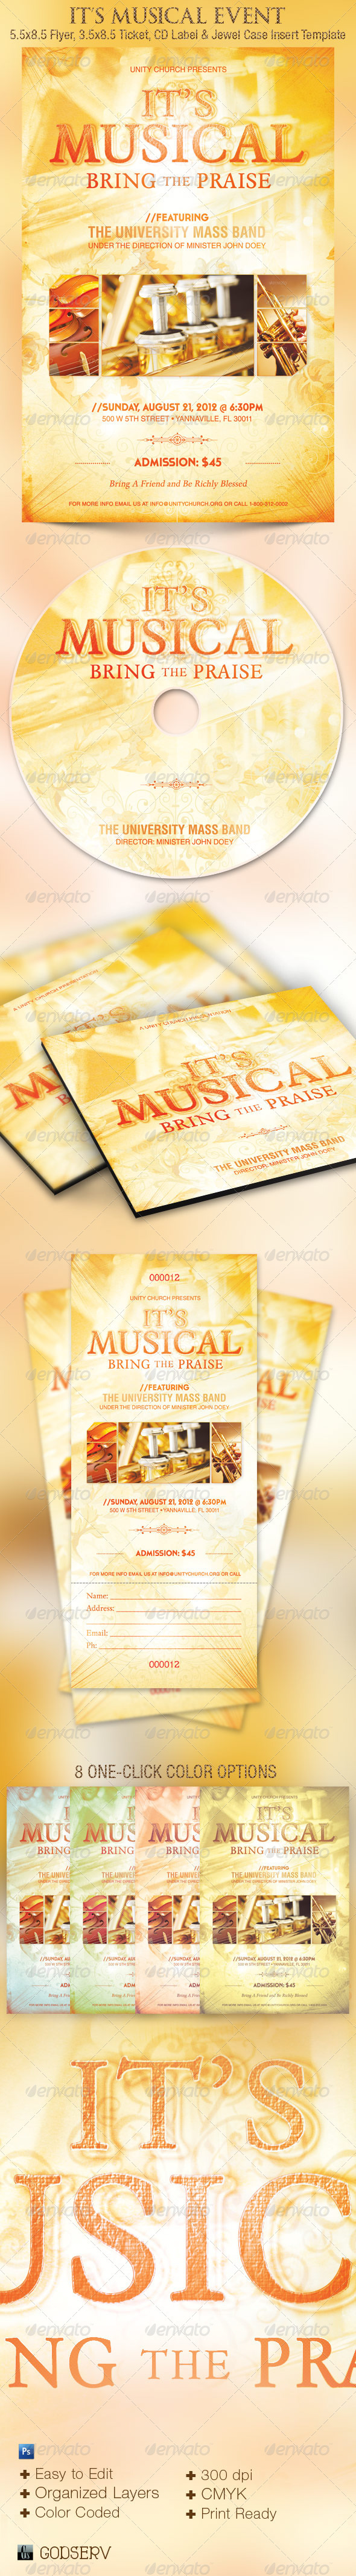 Its Musical Event Flyer, Ticket and CD Template - Church Flyers